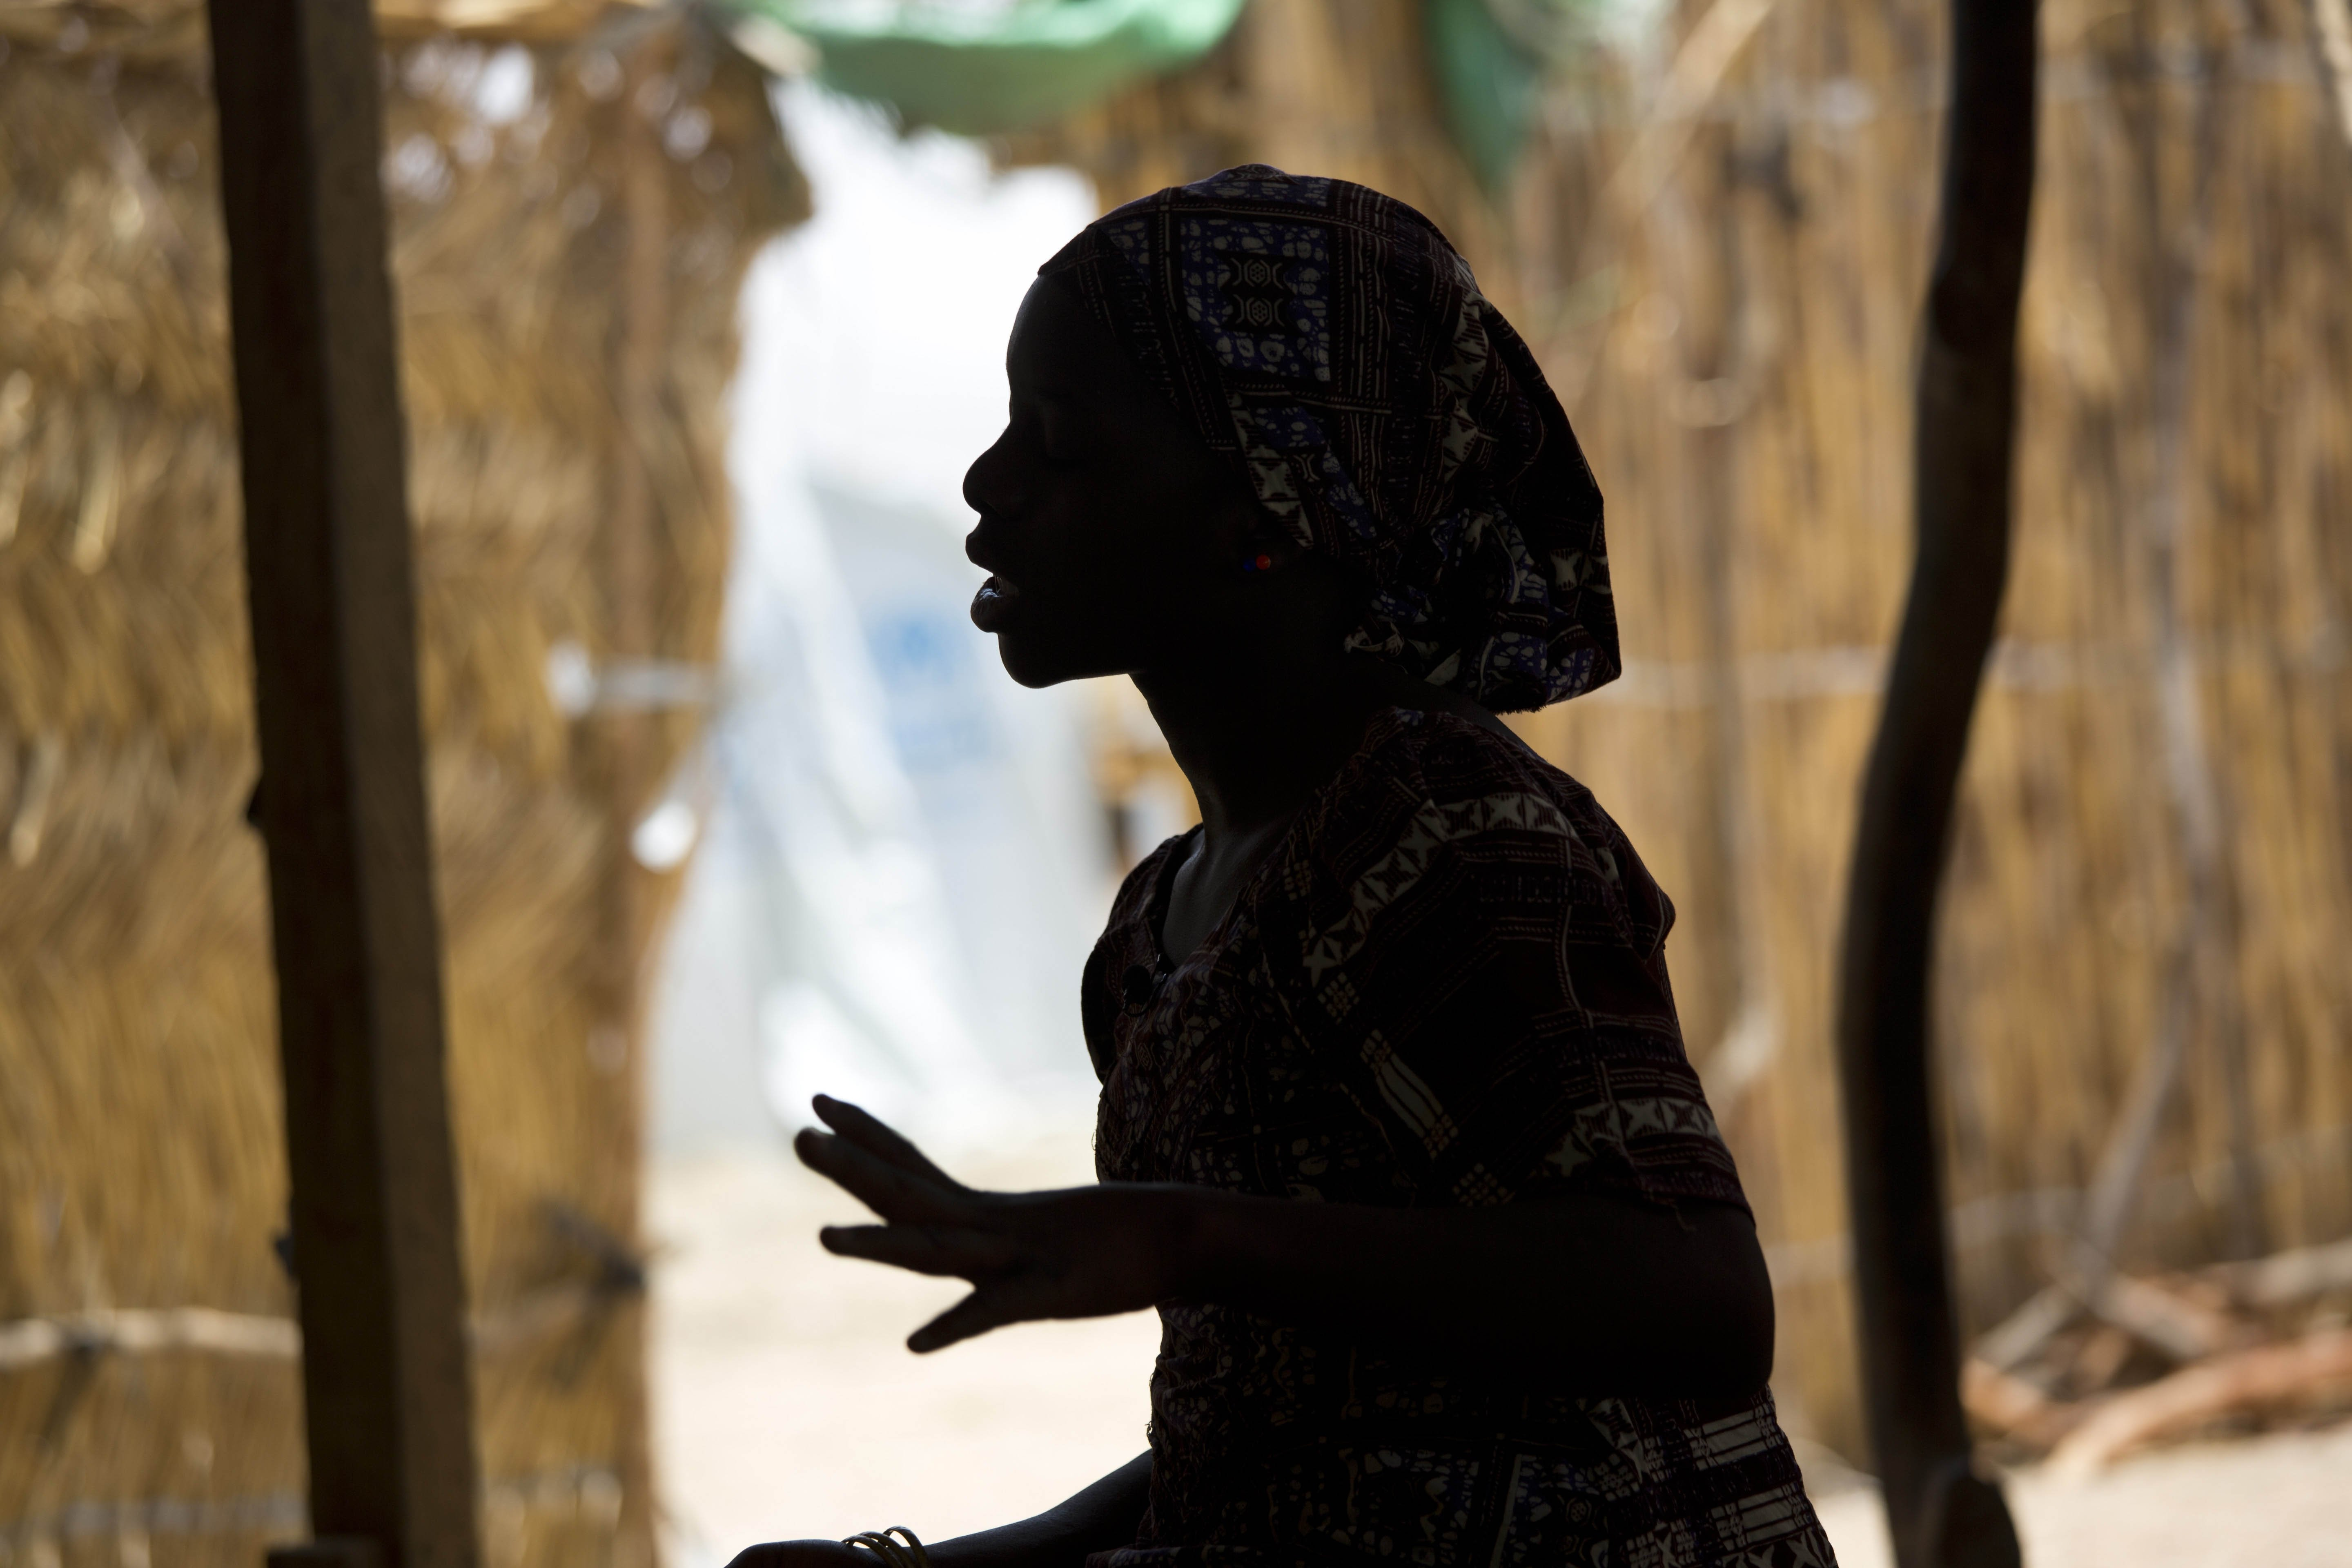 A fifteen-year-old Nigerian refugee at the Minawao camp in Northern Cameroon, on April 5, 2016.